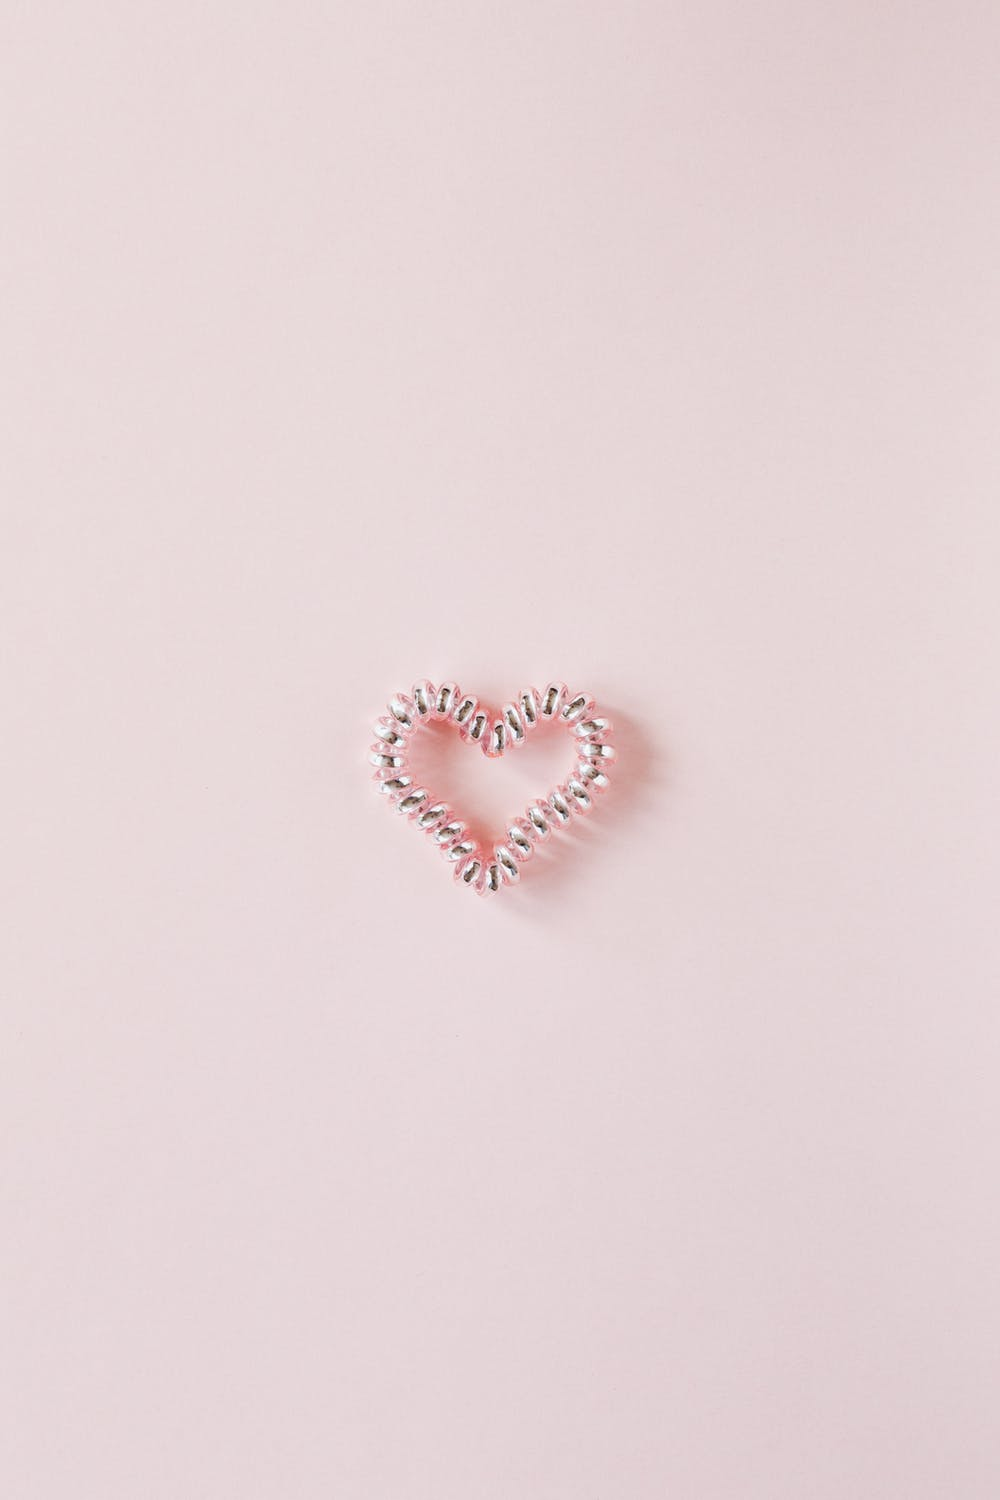 Cute pink iPhone wallpapers